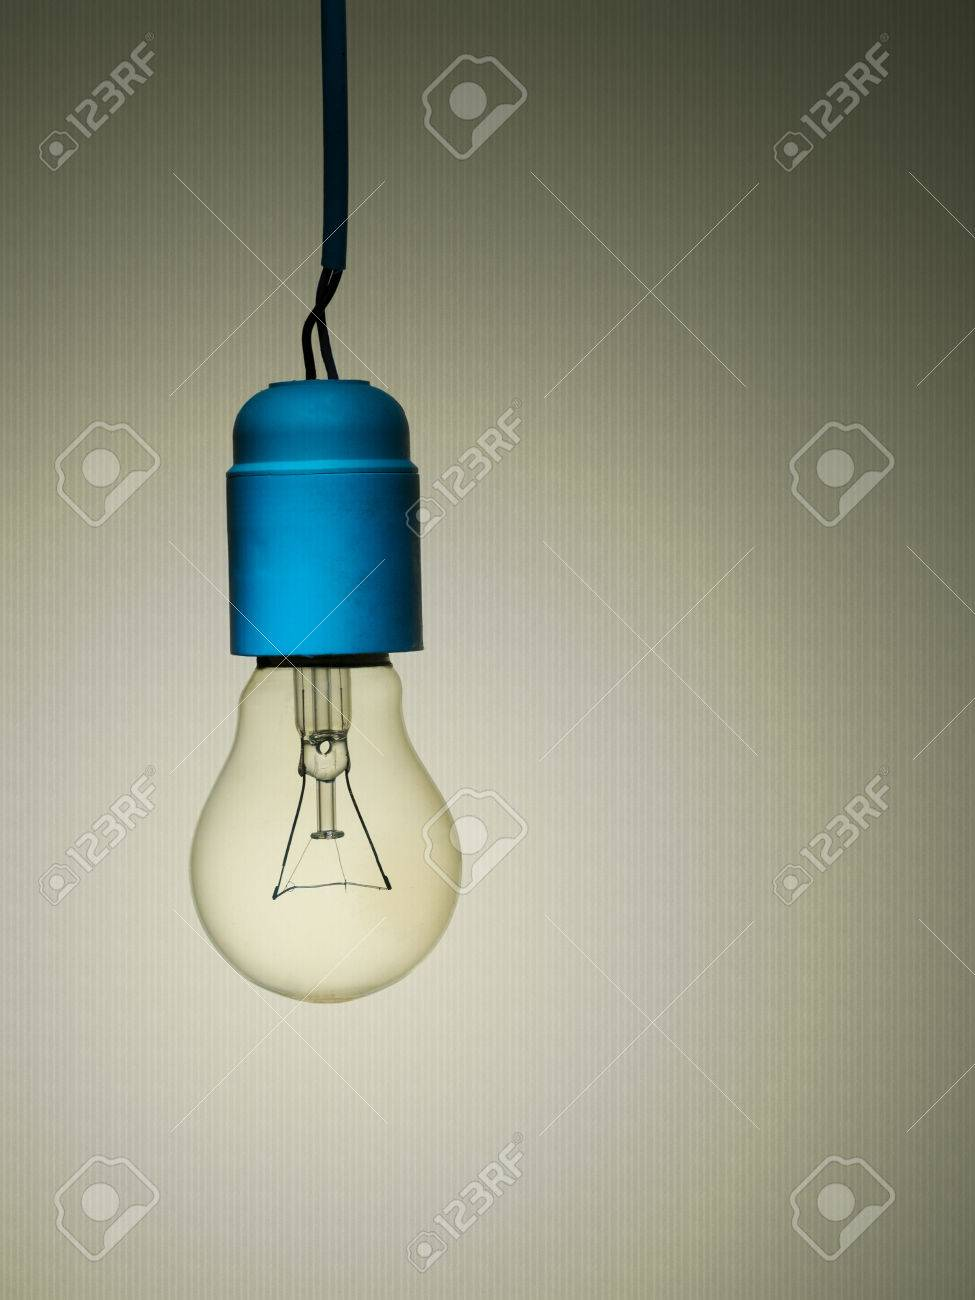 Wiring A Lightbulb Schematic Diagrams Incandescent Light Bulb Diagram Cyberphysics The Electric Vintage With Poor Stock Photo Picture And